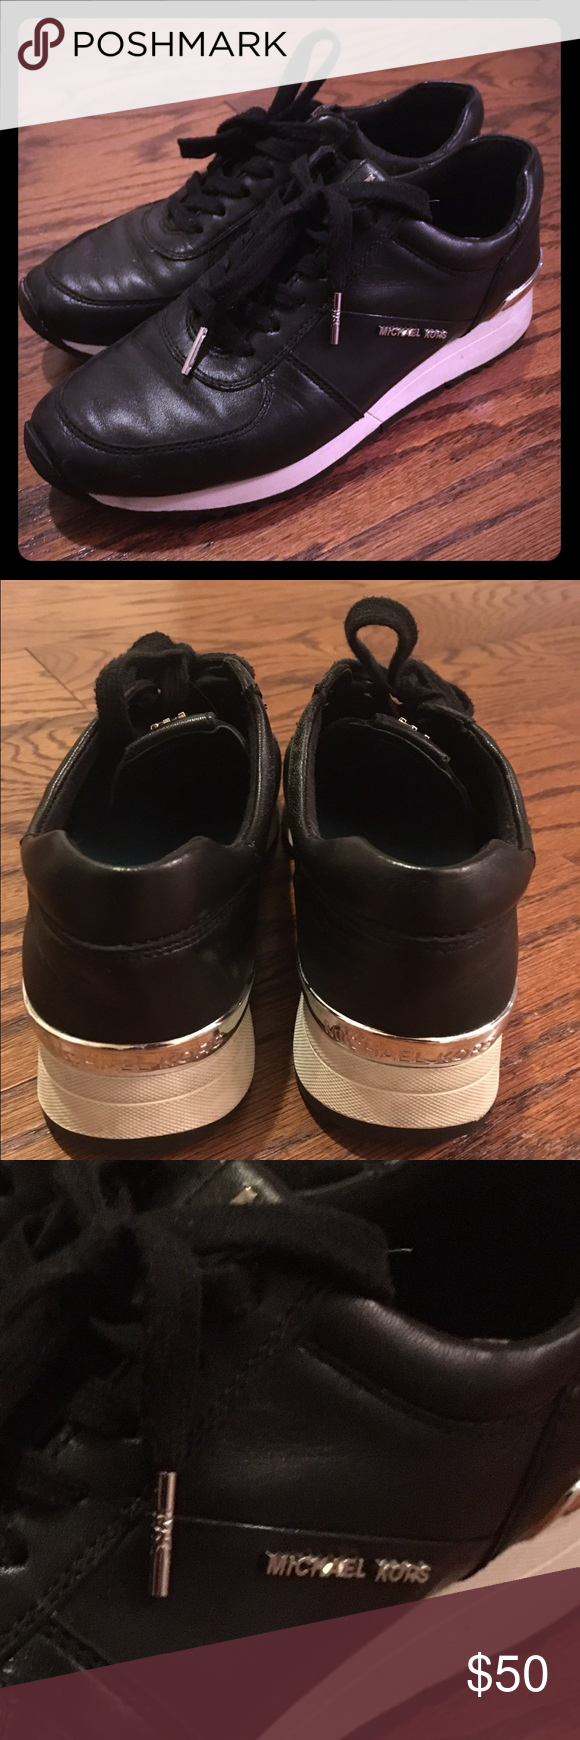 Michael Kors black sneakers Super cute gently used Michael Kors black leather sneaker Michael Kors Shoes Athletic Shoes